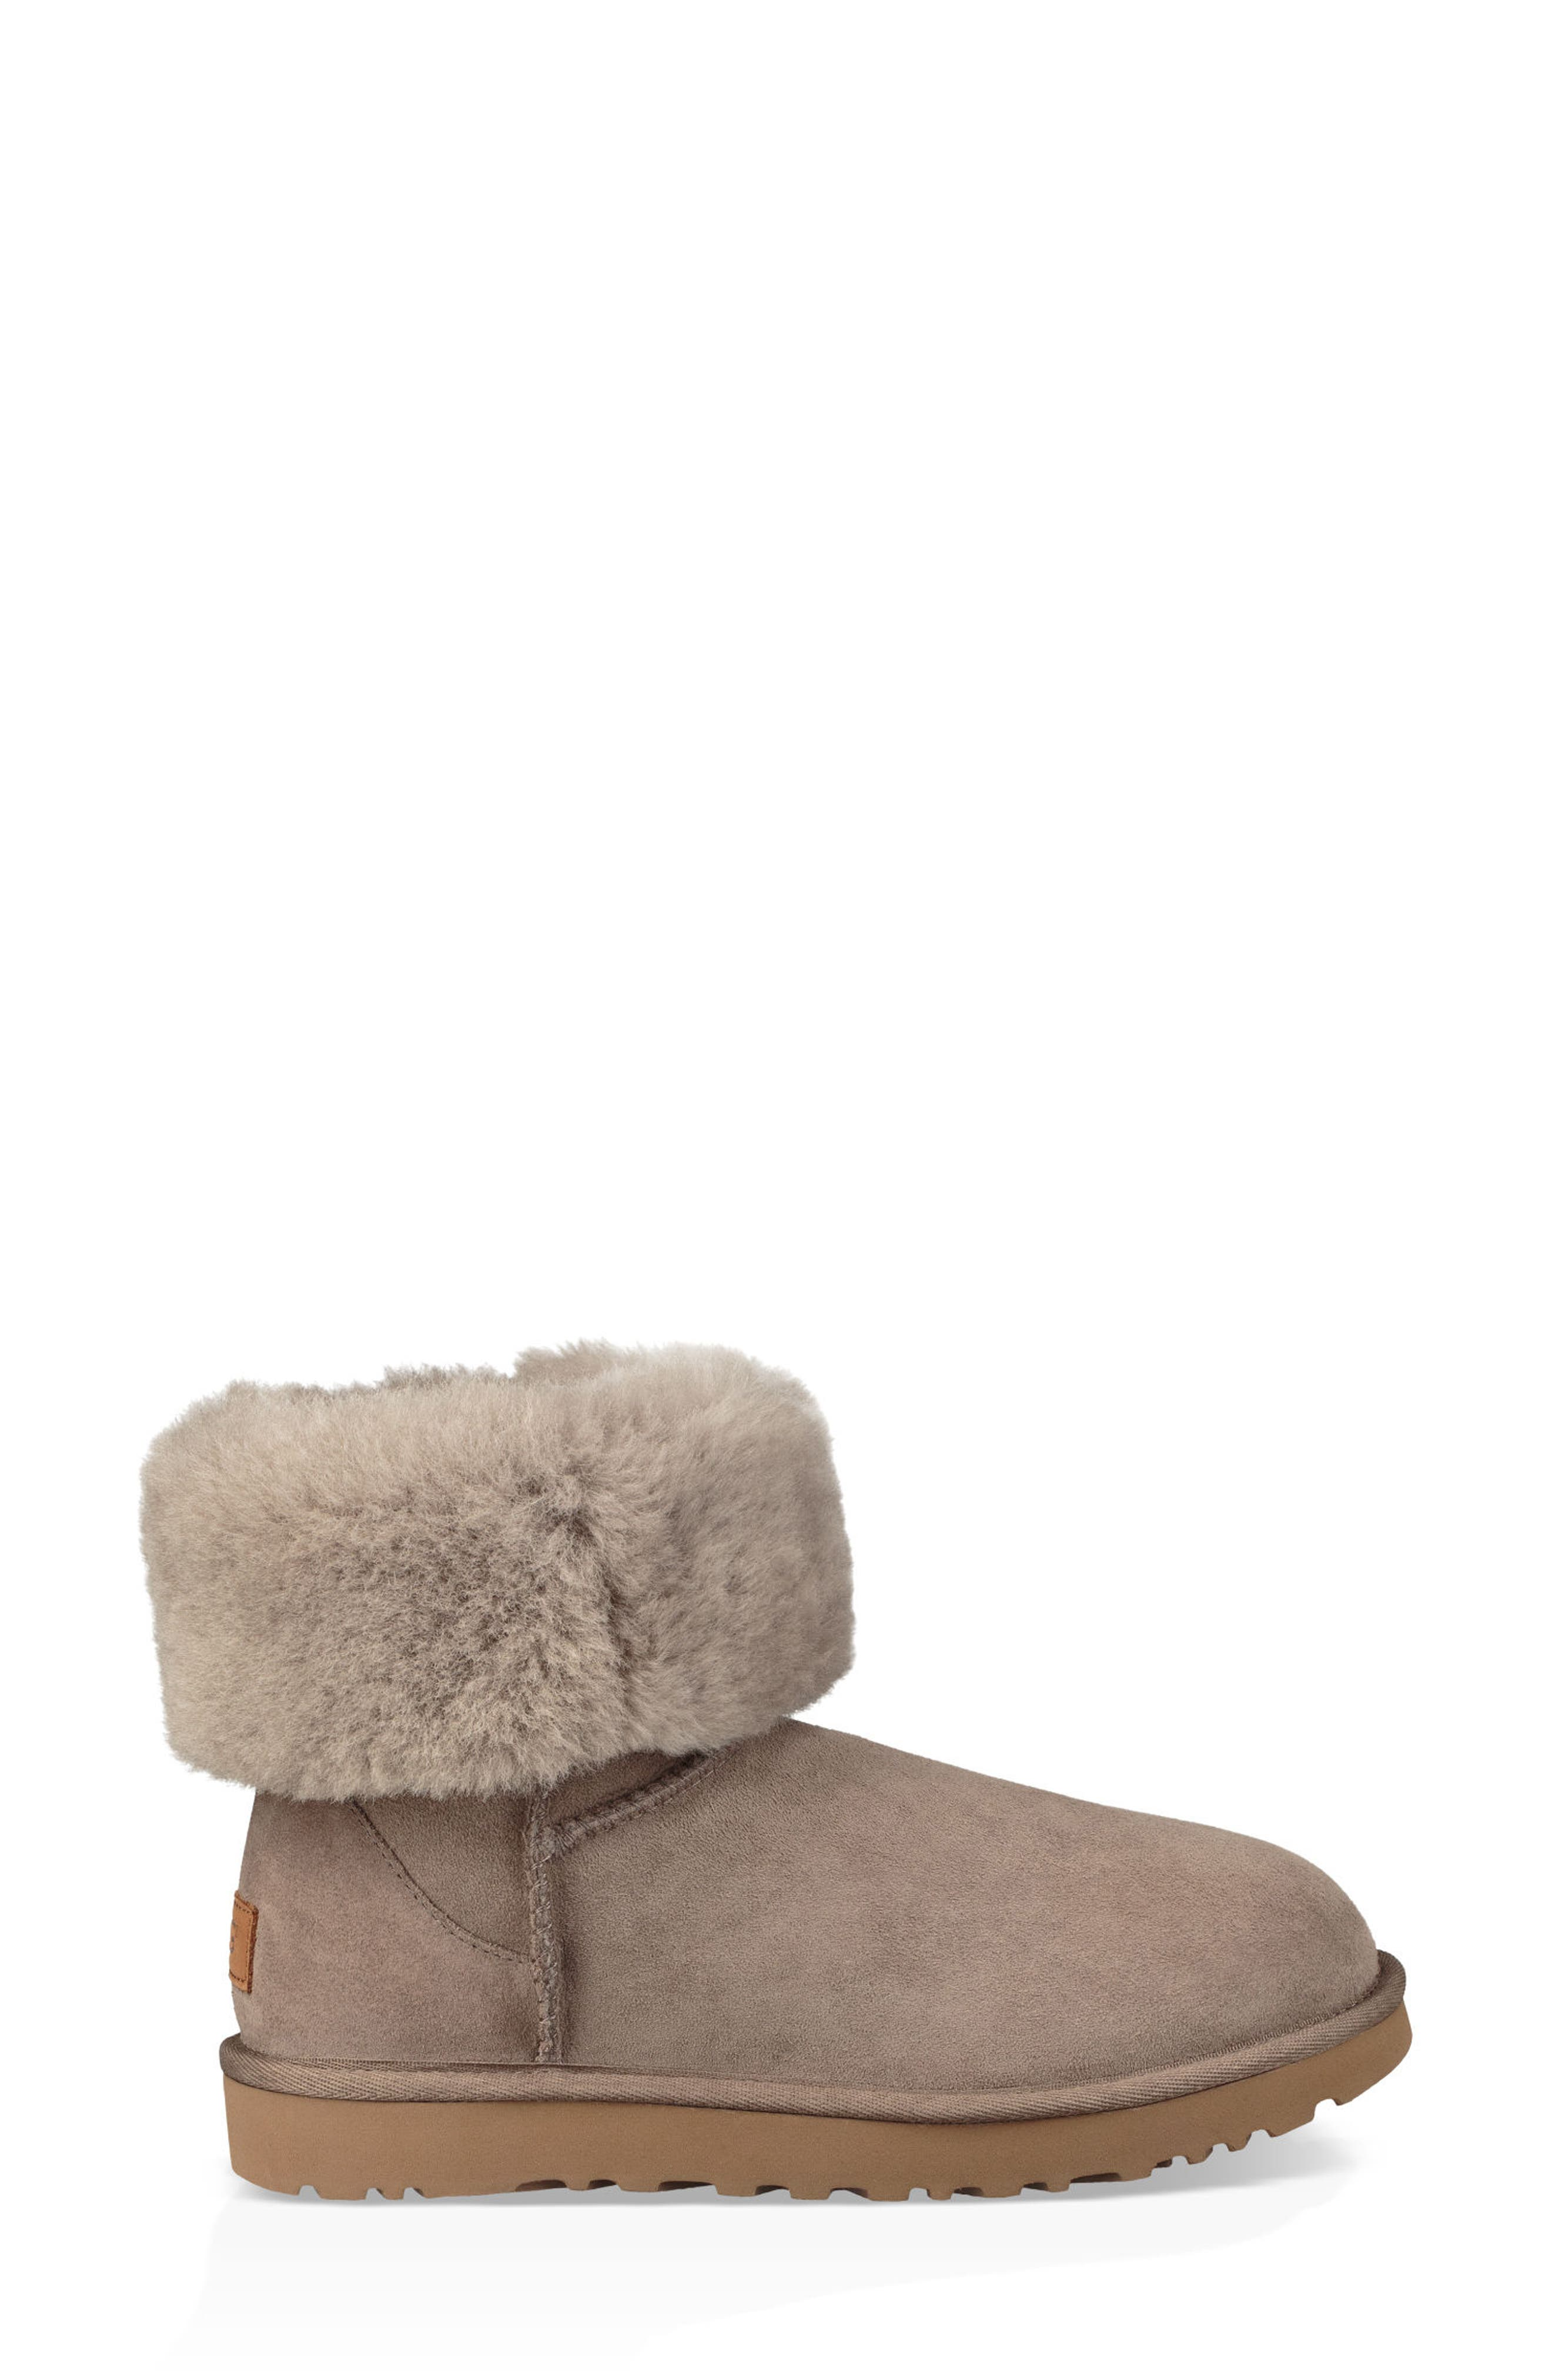 'Classic II' Genuine Shearling Lined Short Boot,                             Alternate thumbnail 8, color,                             BRINDLE SUEDE